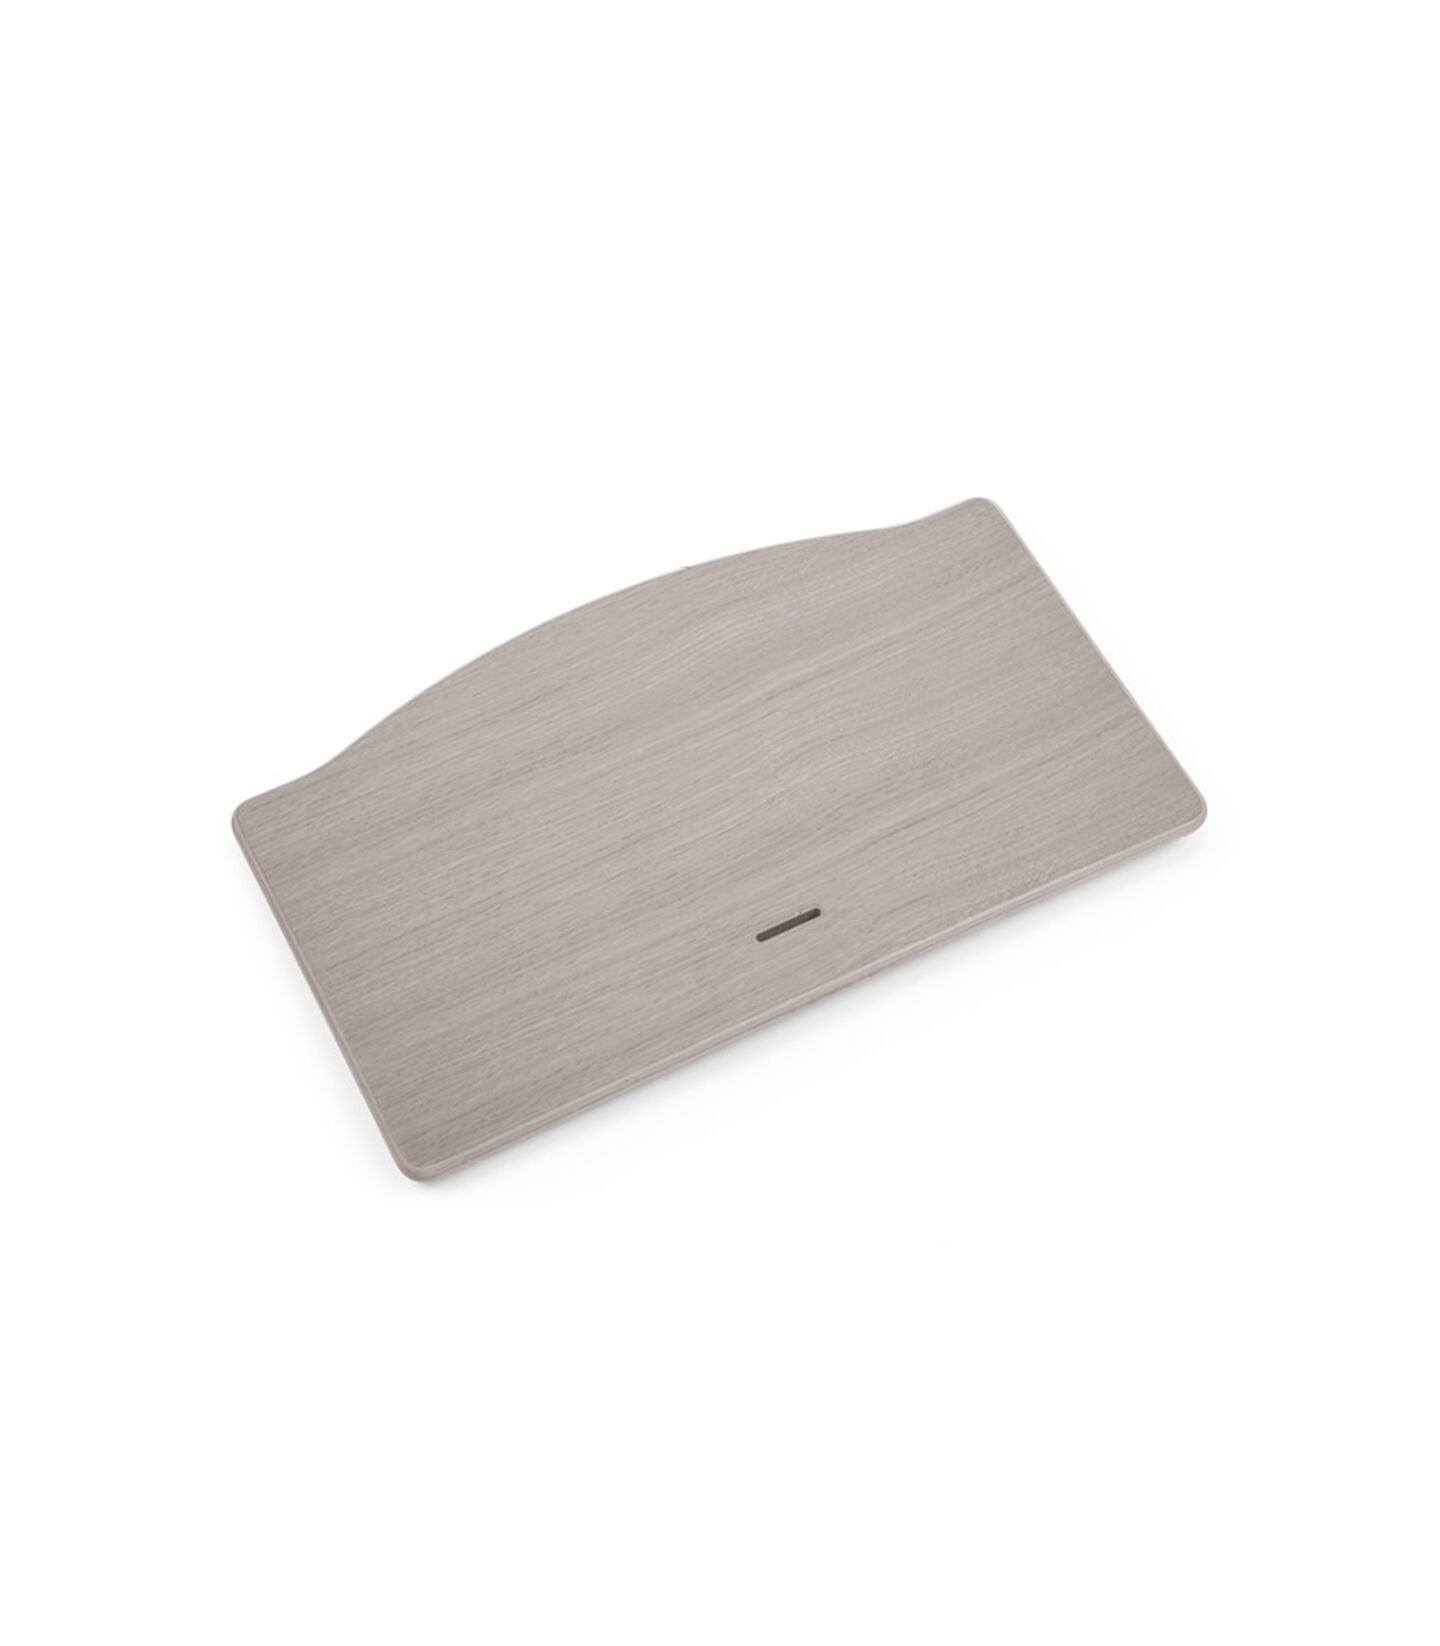 Tripp Trapp® Seatplate Oak Greywash, Rovere Grigio Acquarello, mainview view 2